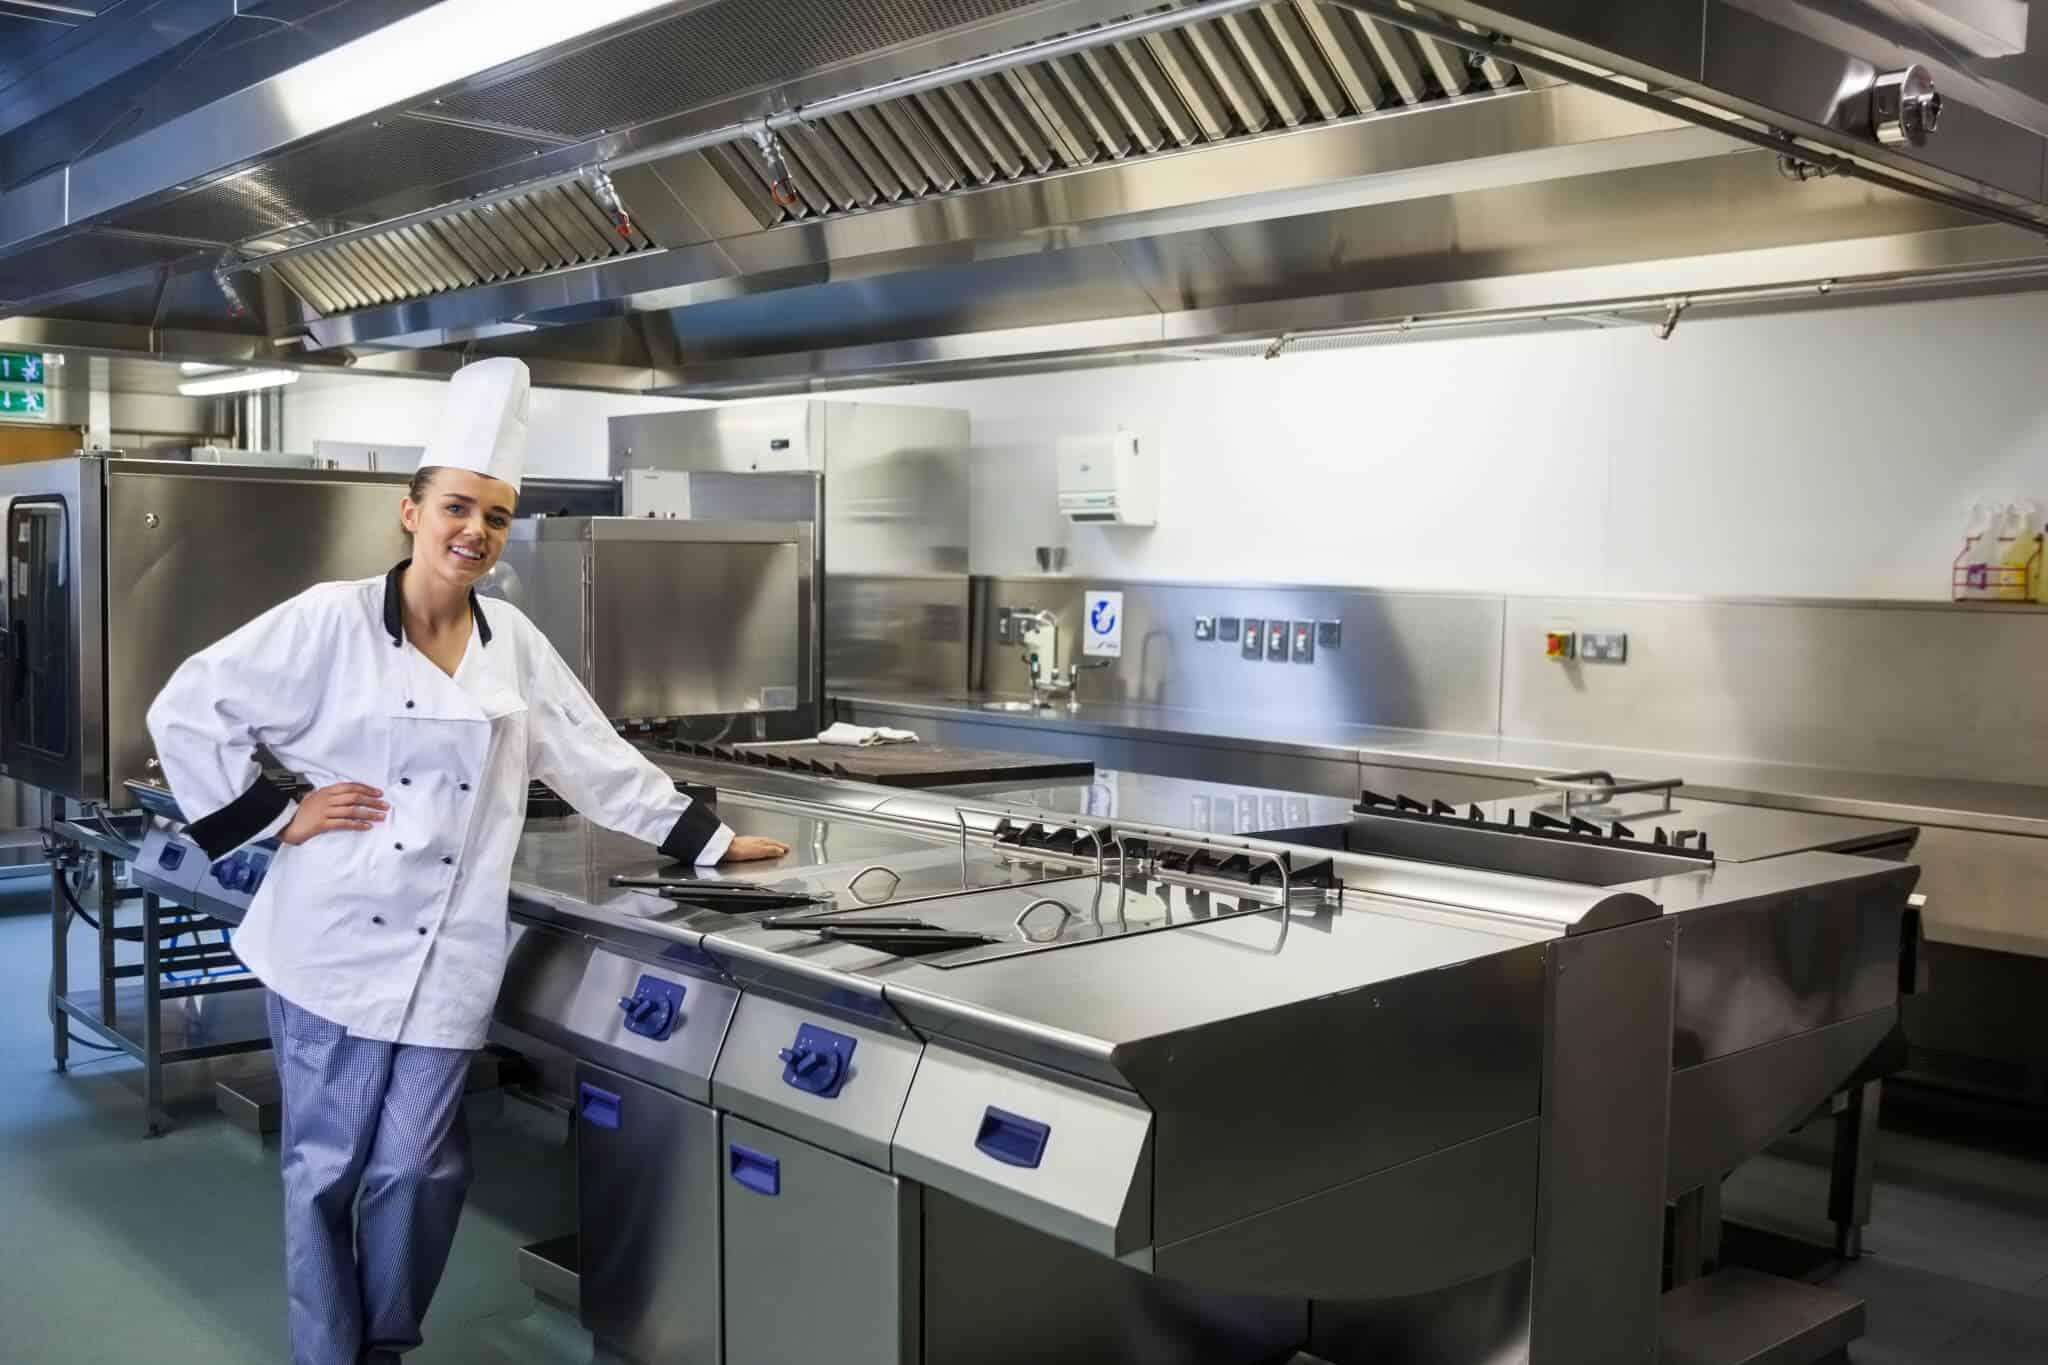 industrial kitchen supplies grill for outdoor maintenance agreements your business in chapel